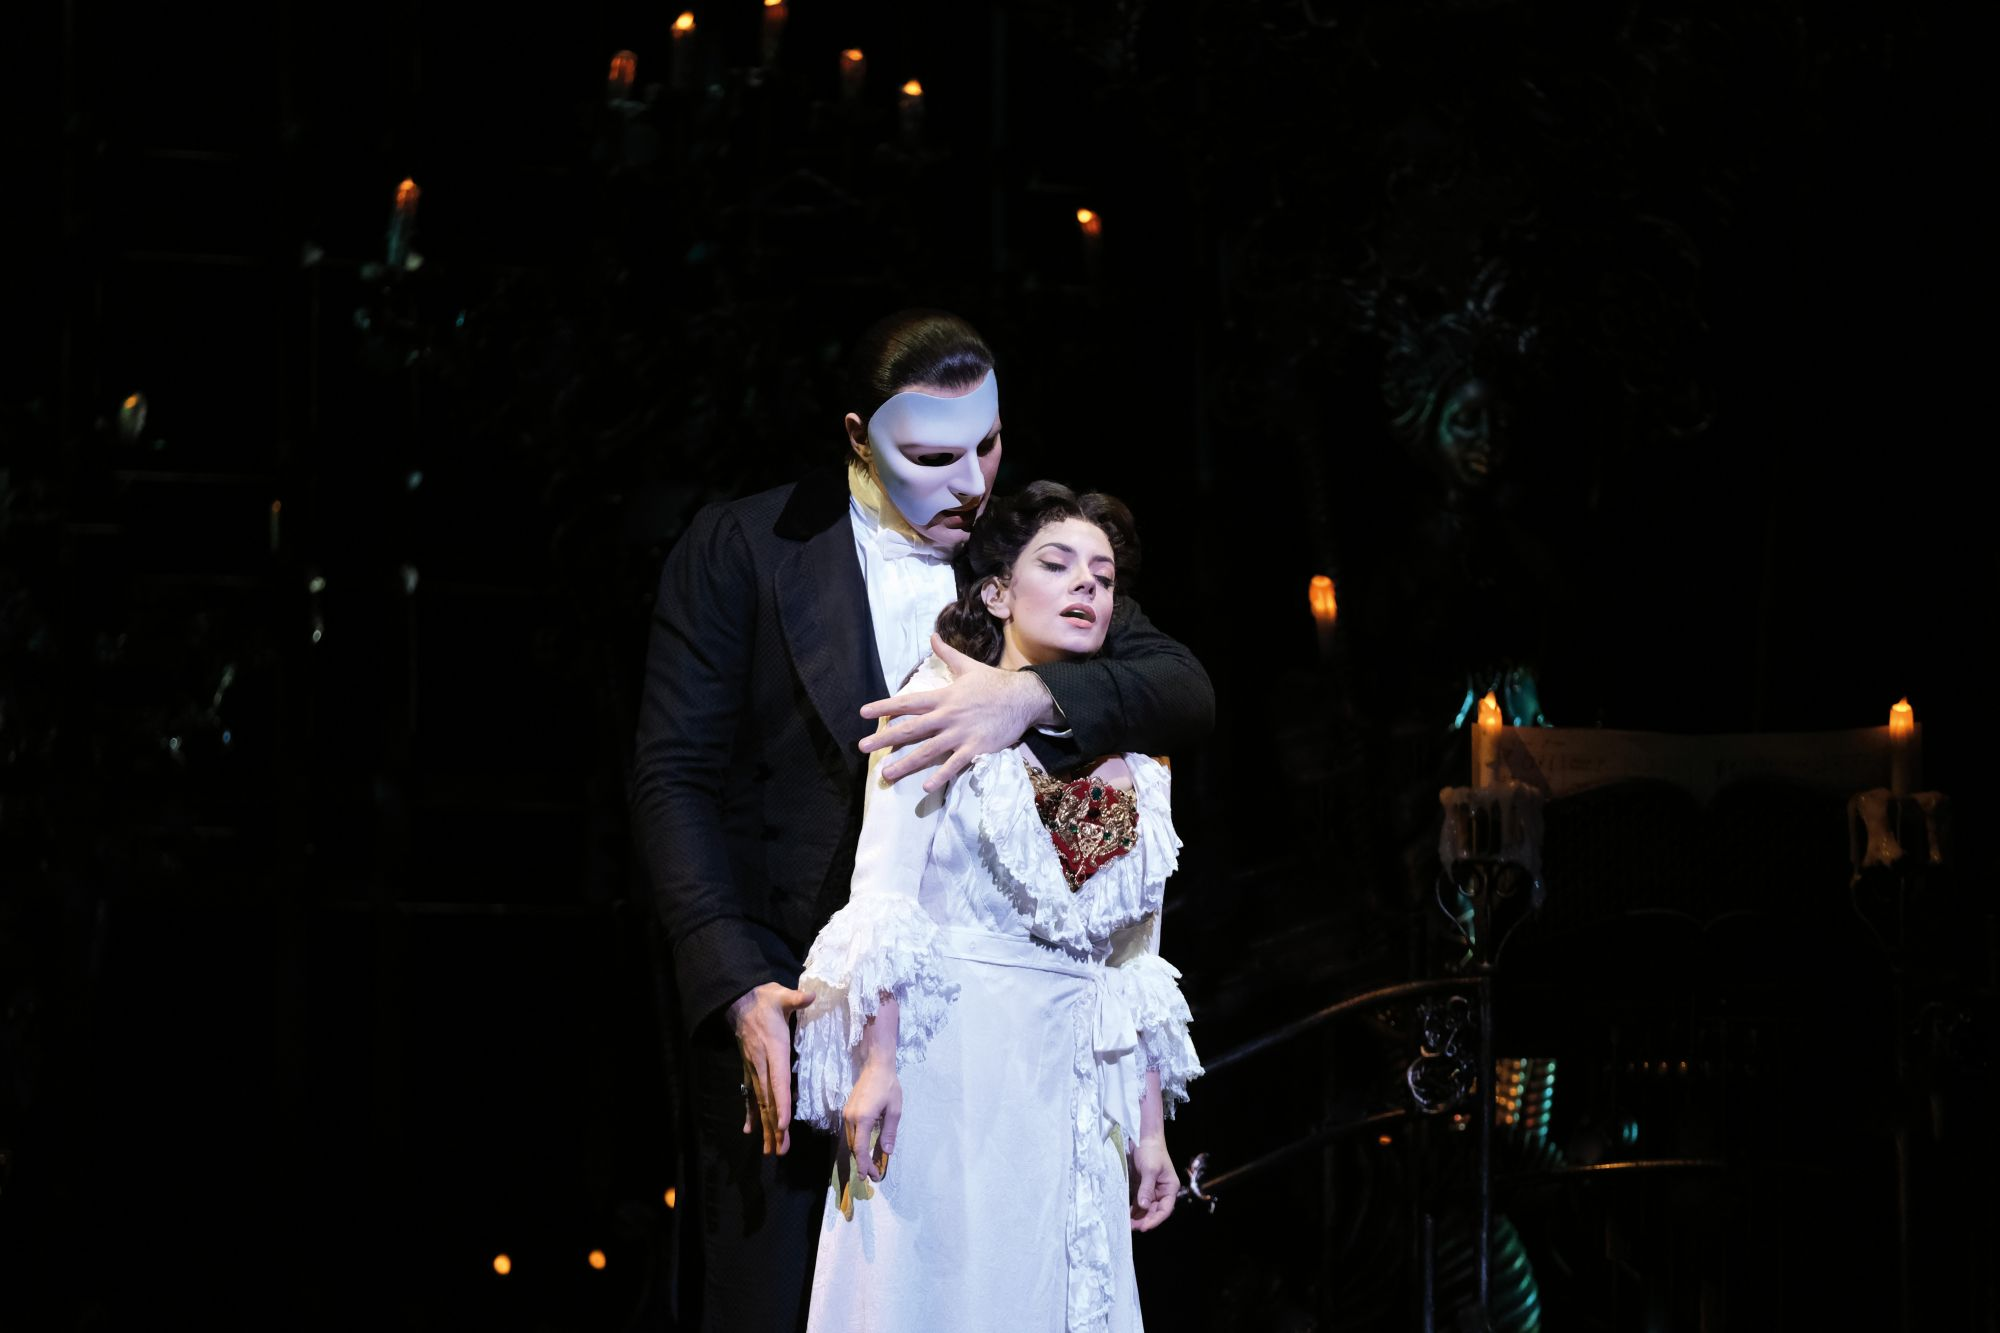 The Phantom Of The Opera: Love, Lust And Lessons